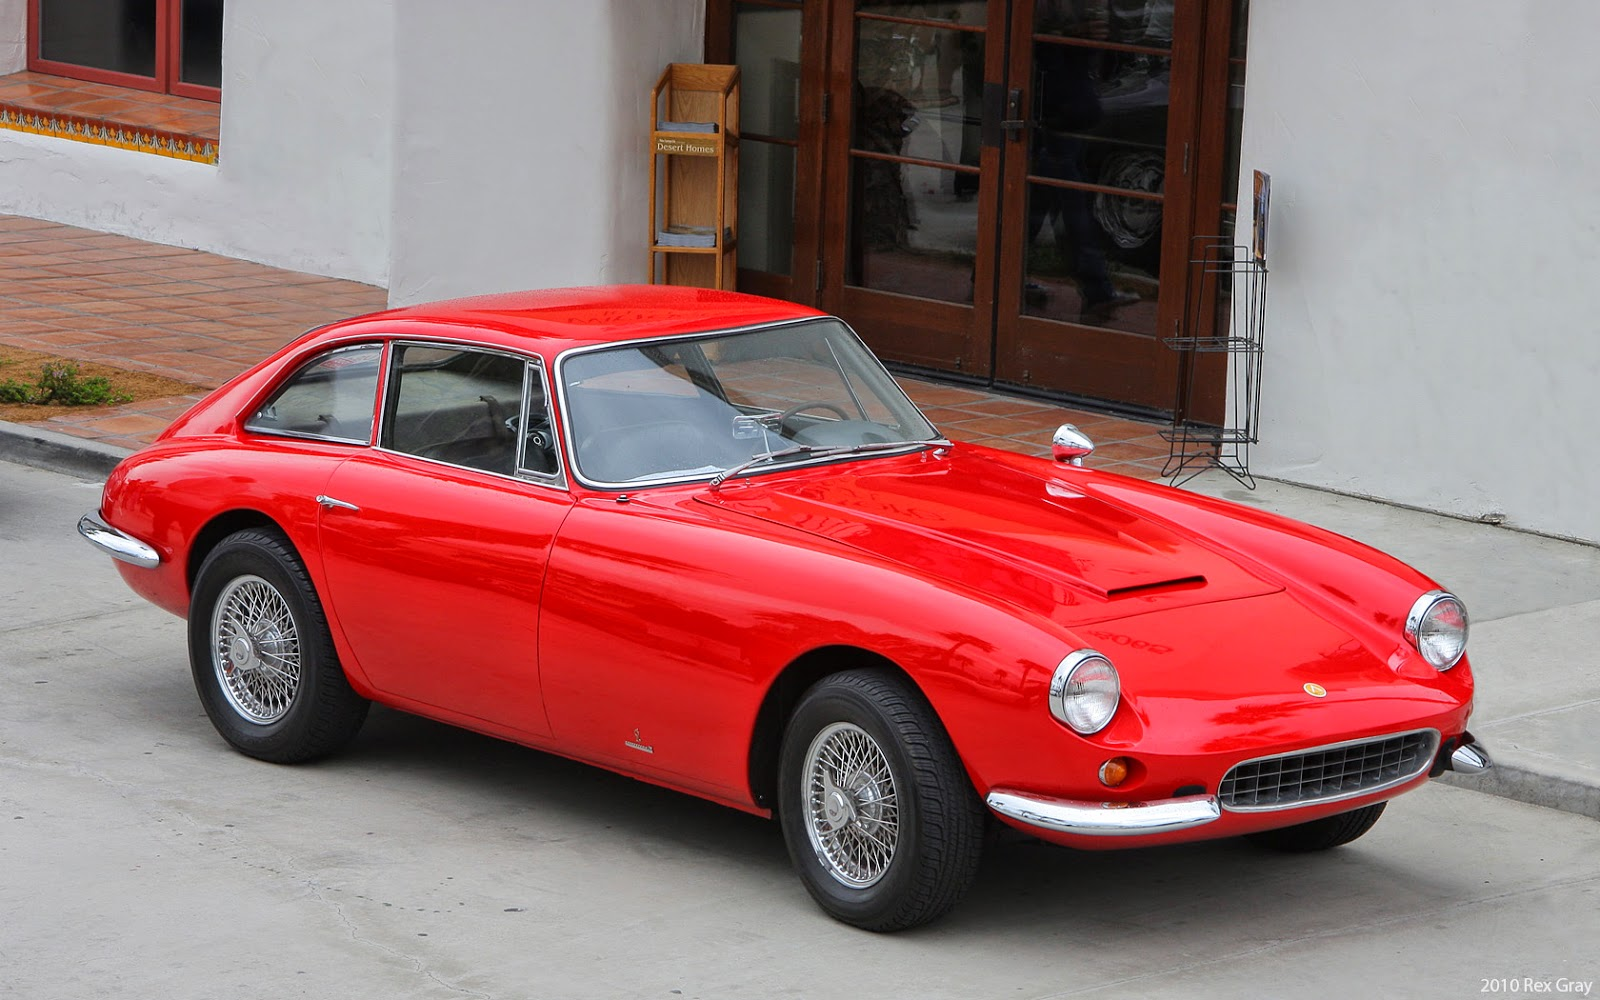 DONATE A CAR: 2 top benifits donate old cars to charity